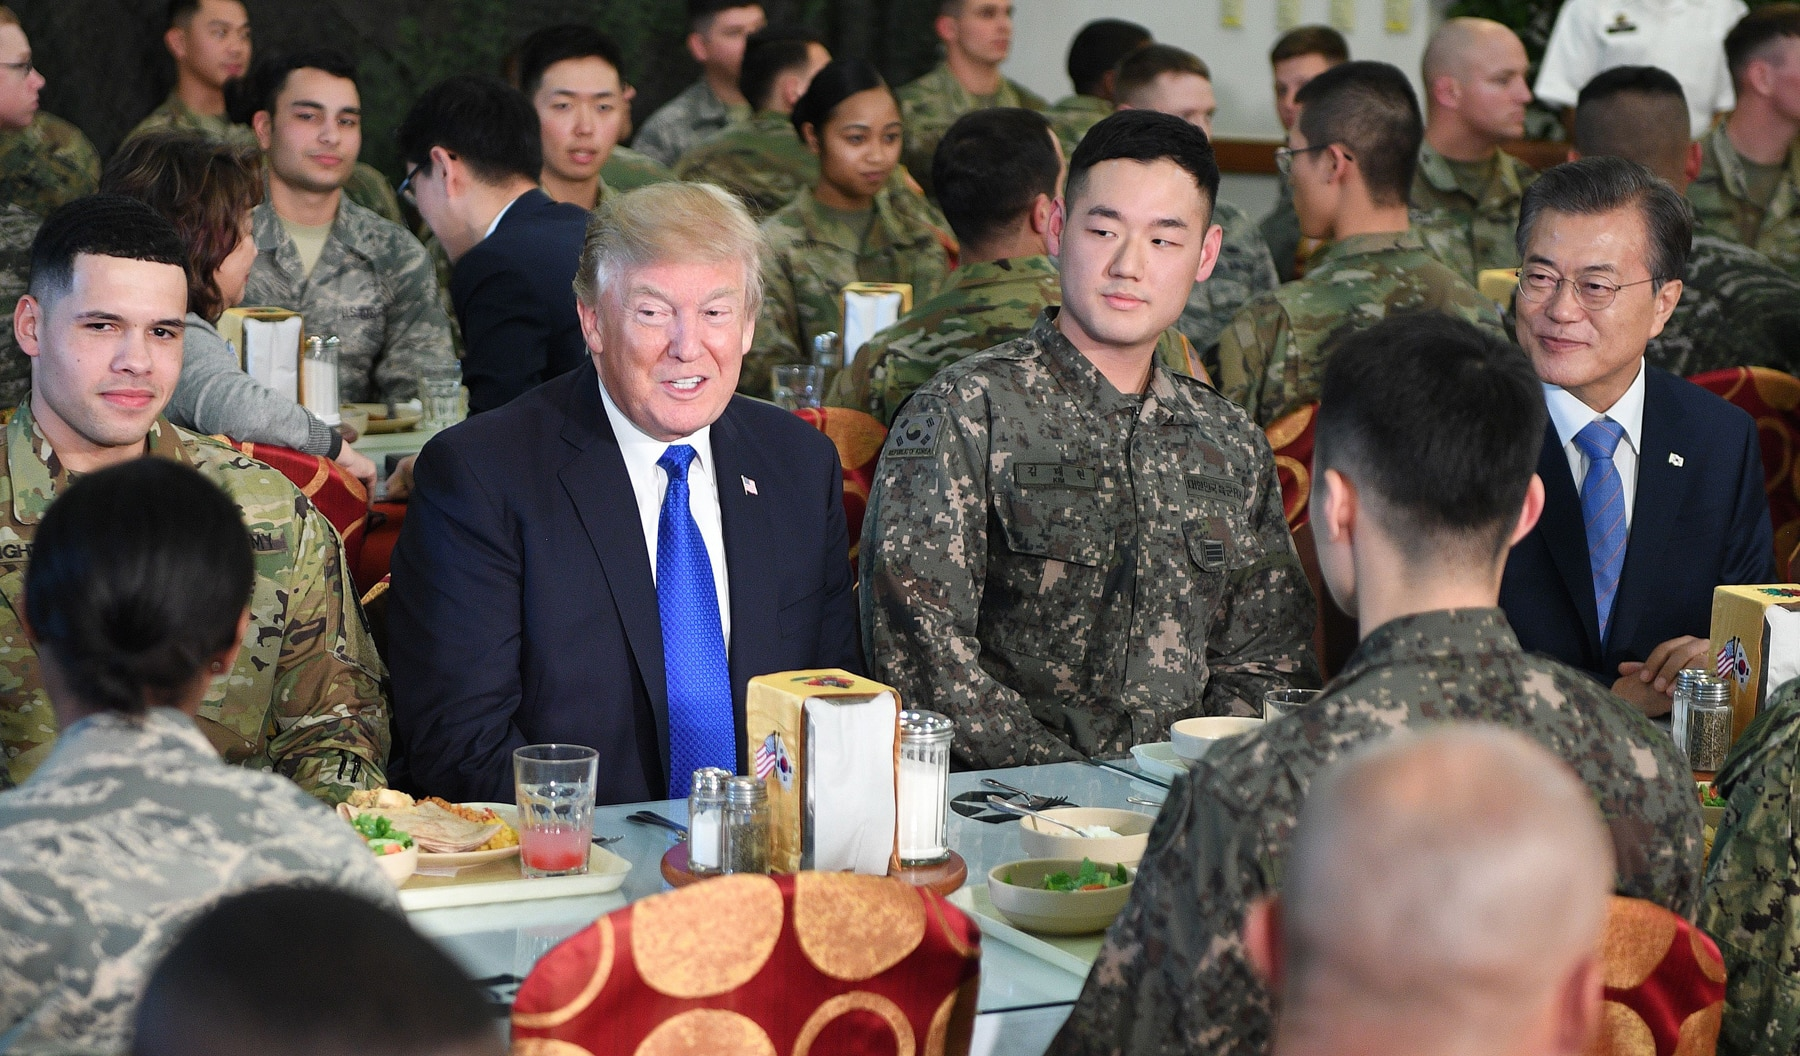 U.S. President Donald Trump and South Korean President Moon Jae-in sitting with military personnel (© Jim Watson/AFP/Getty Images)